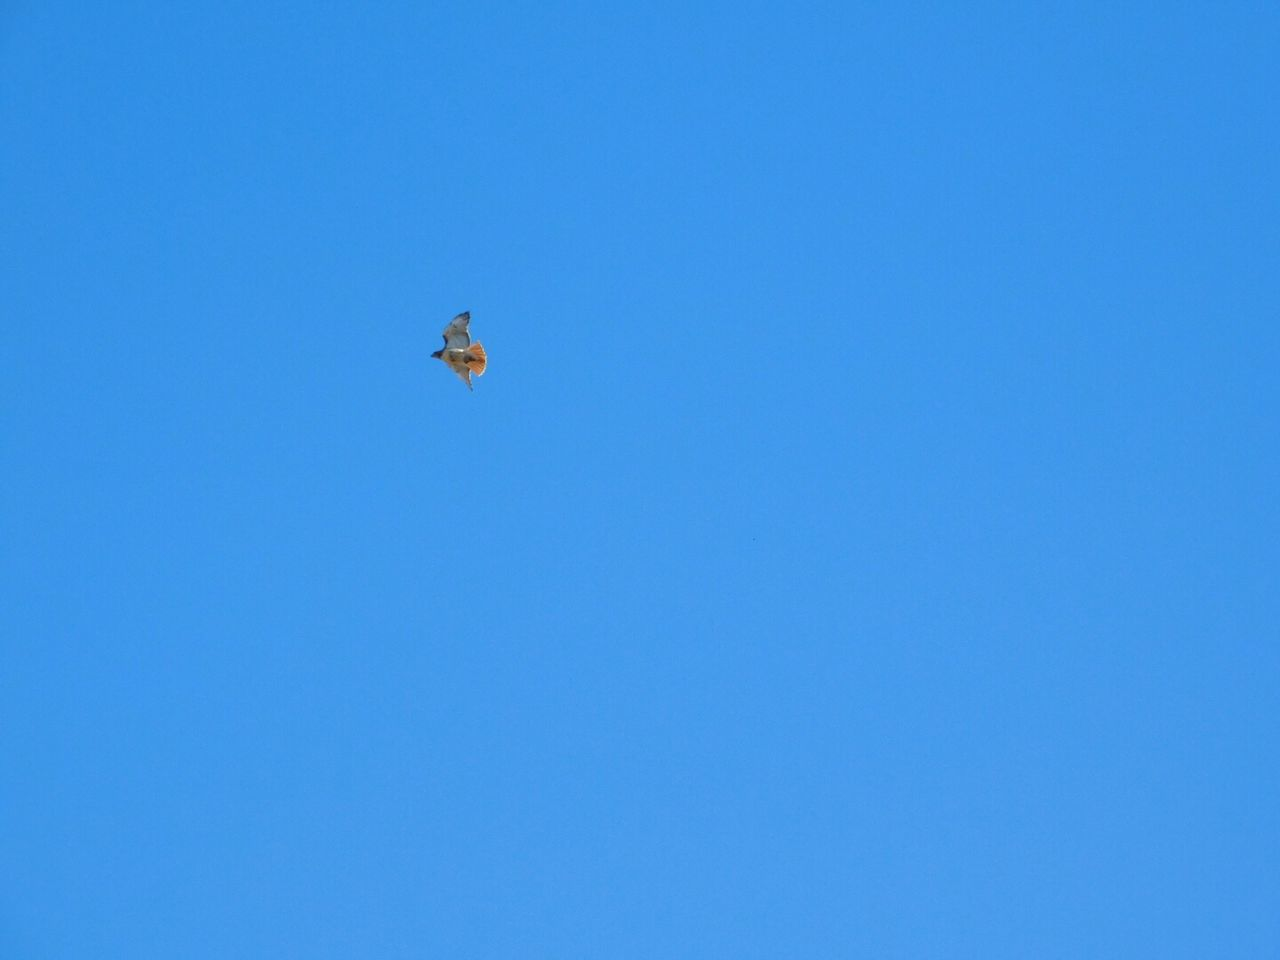 copy space, blue, clear sky, flying, low angle view, mid-air, outdoors, day, one animal, nature, no people, animal themes, bird, spread wings, sky